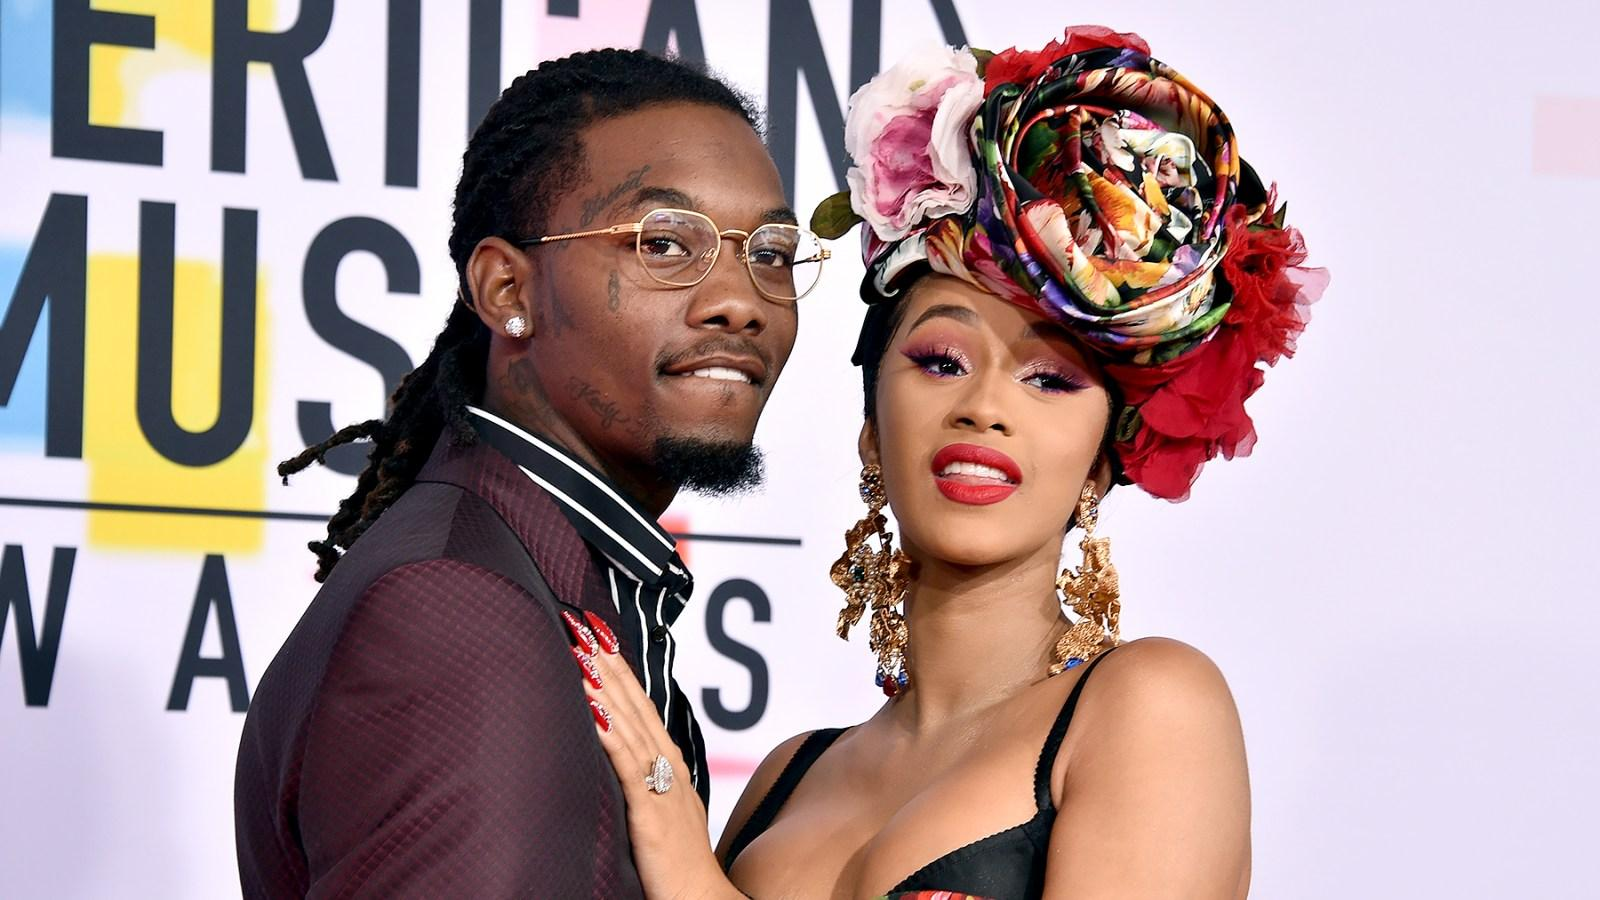 Cardi B Fuming As Offset Surprises Her On Stage Trying To Win Her Back - Check Out The Awkward Videos!